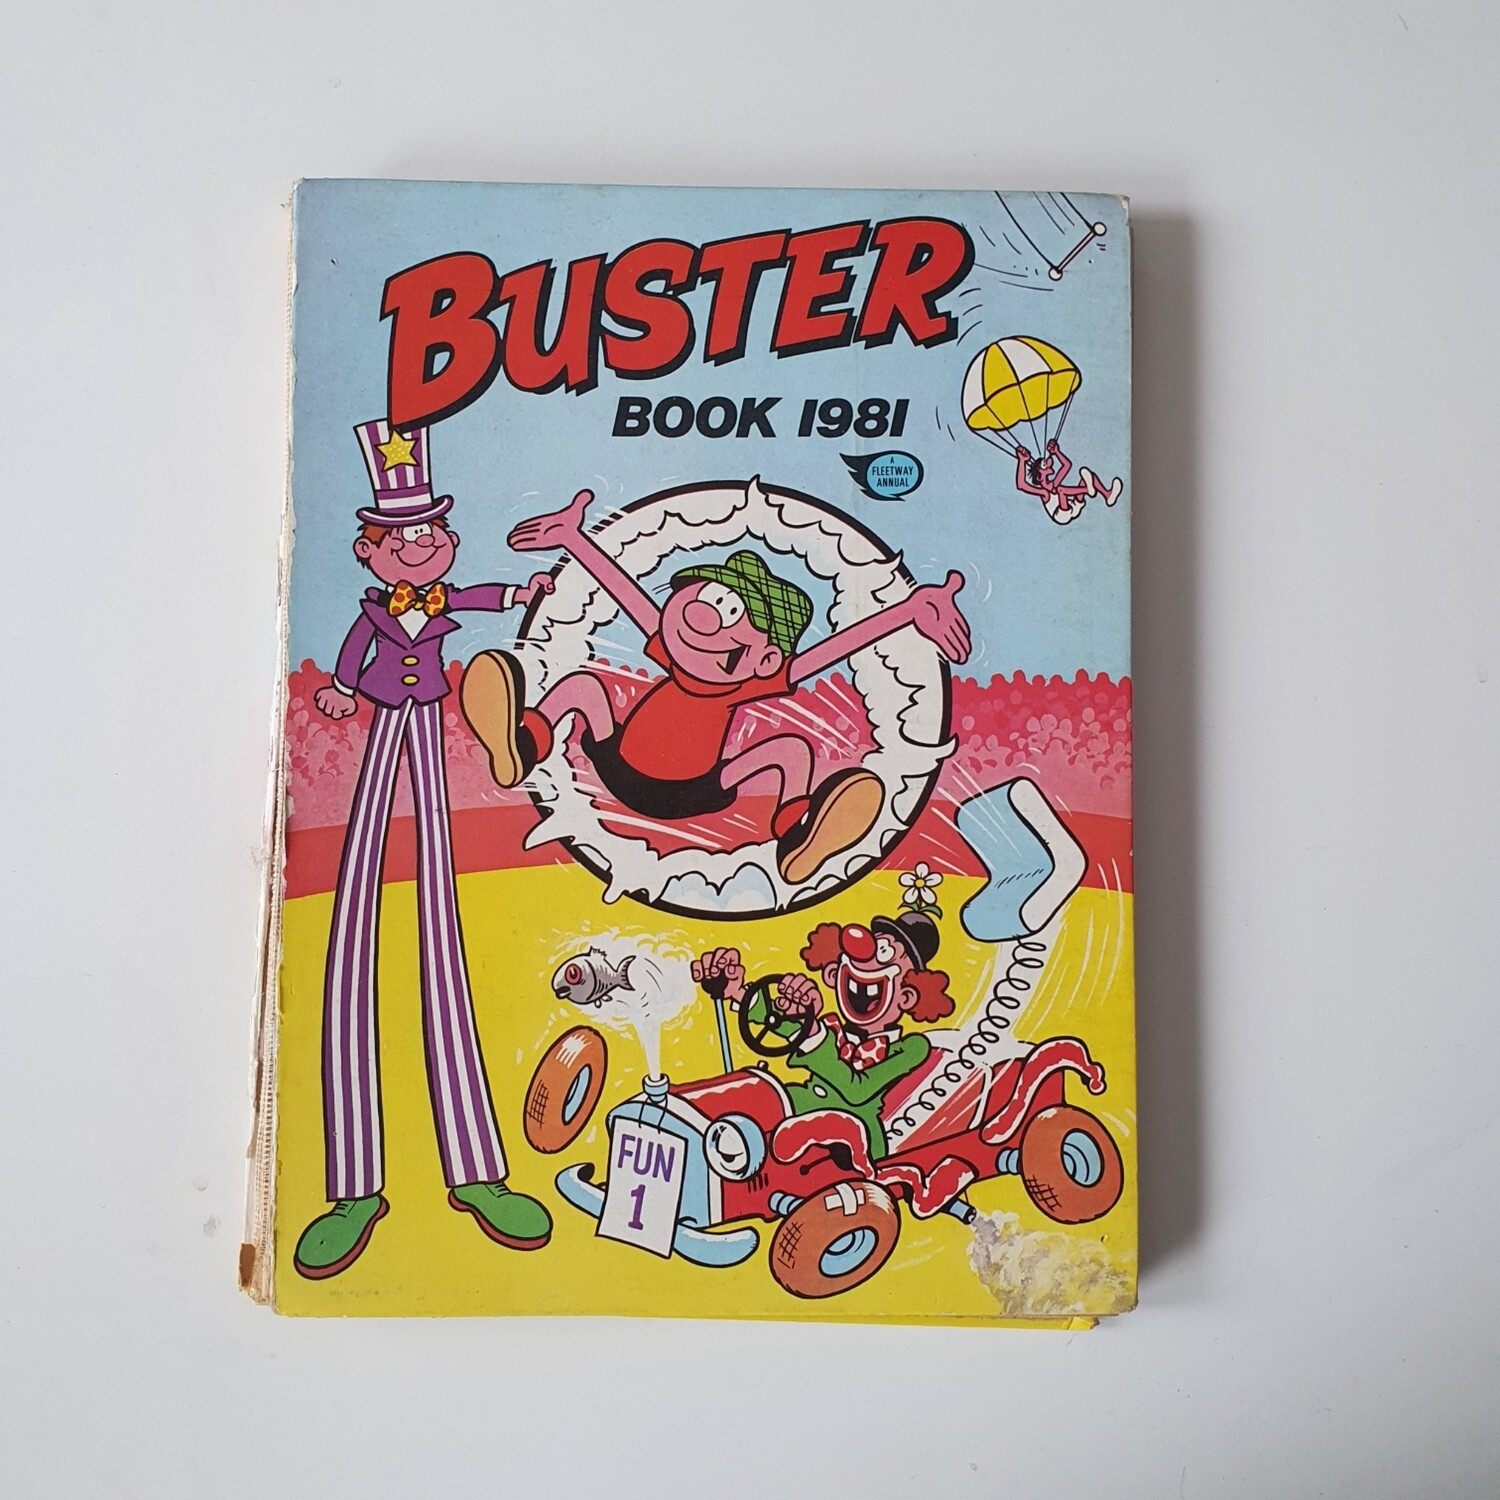 Buster 1981